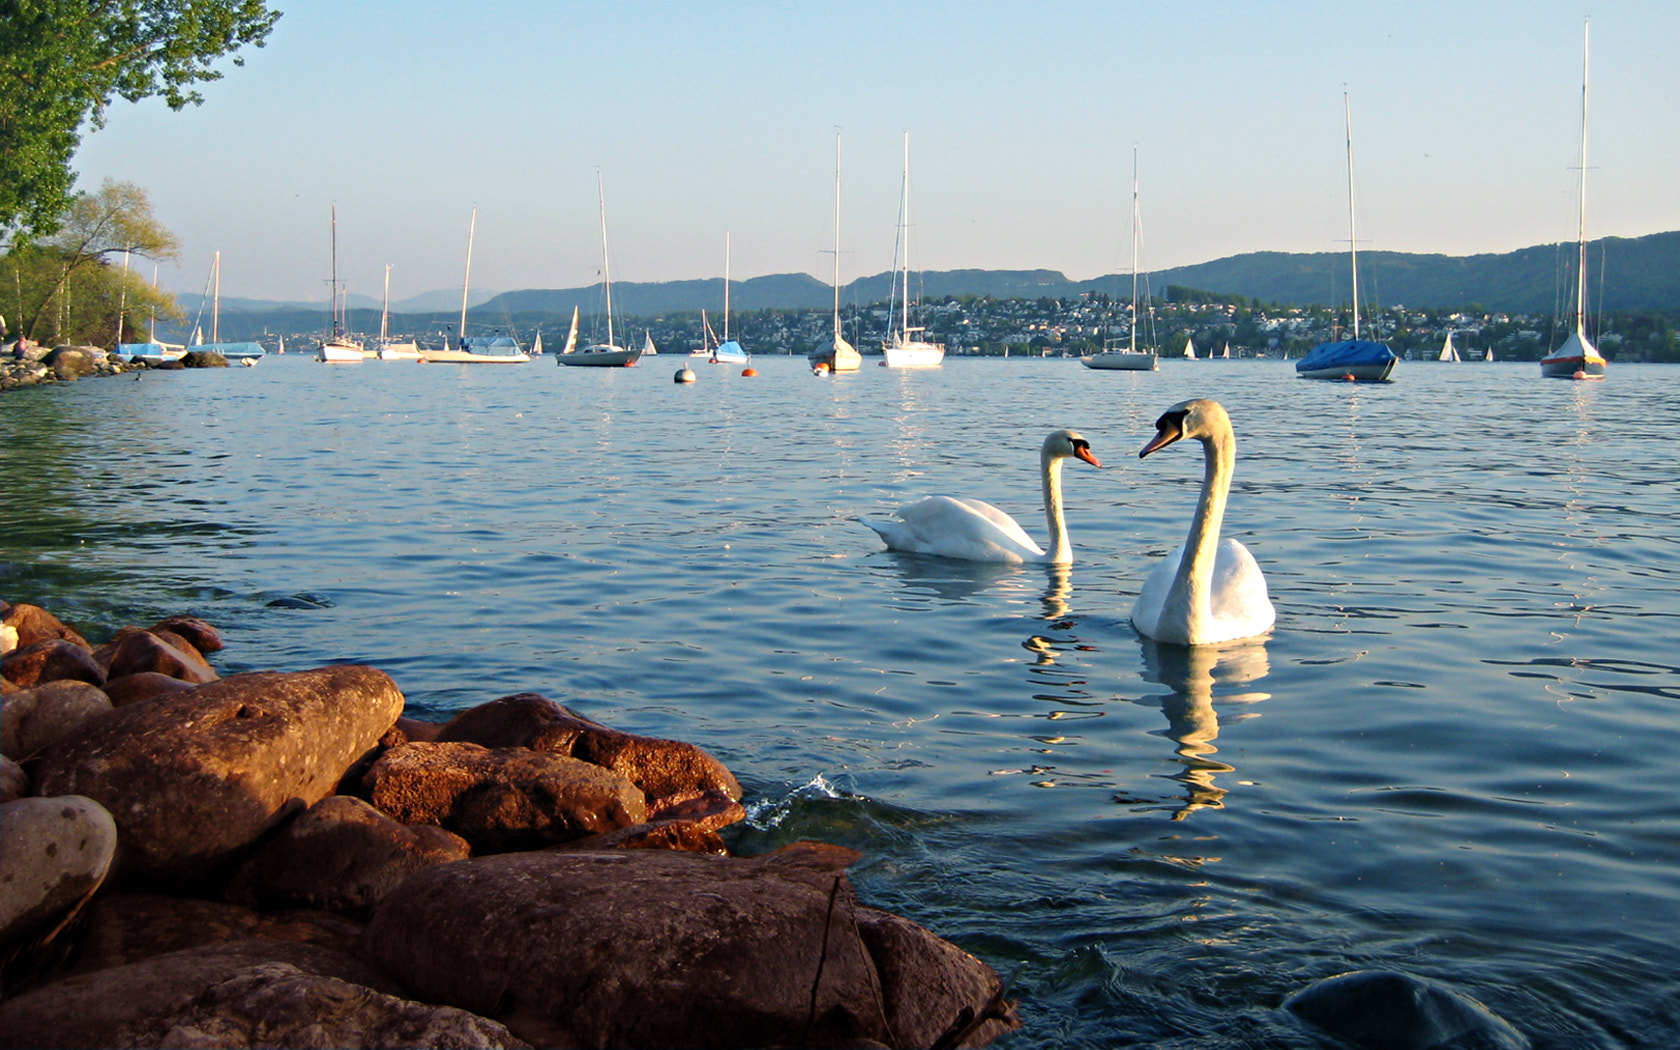 Photograph Lake Zurich by Tom Anders on 500px